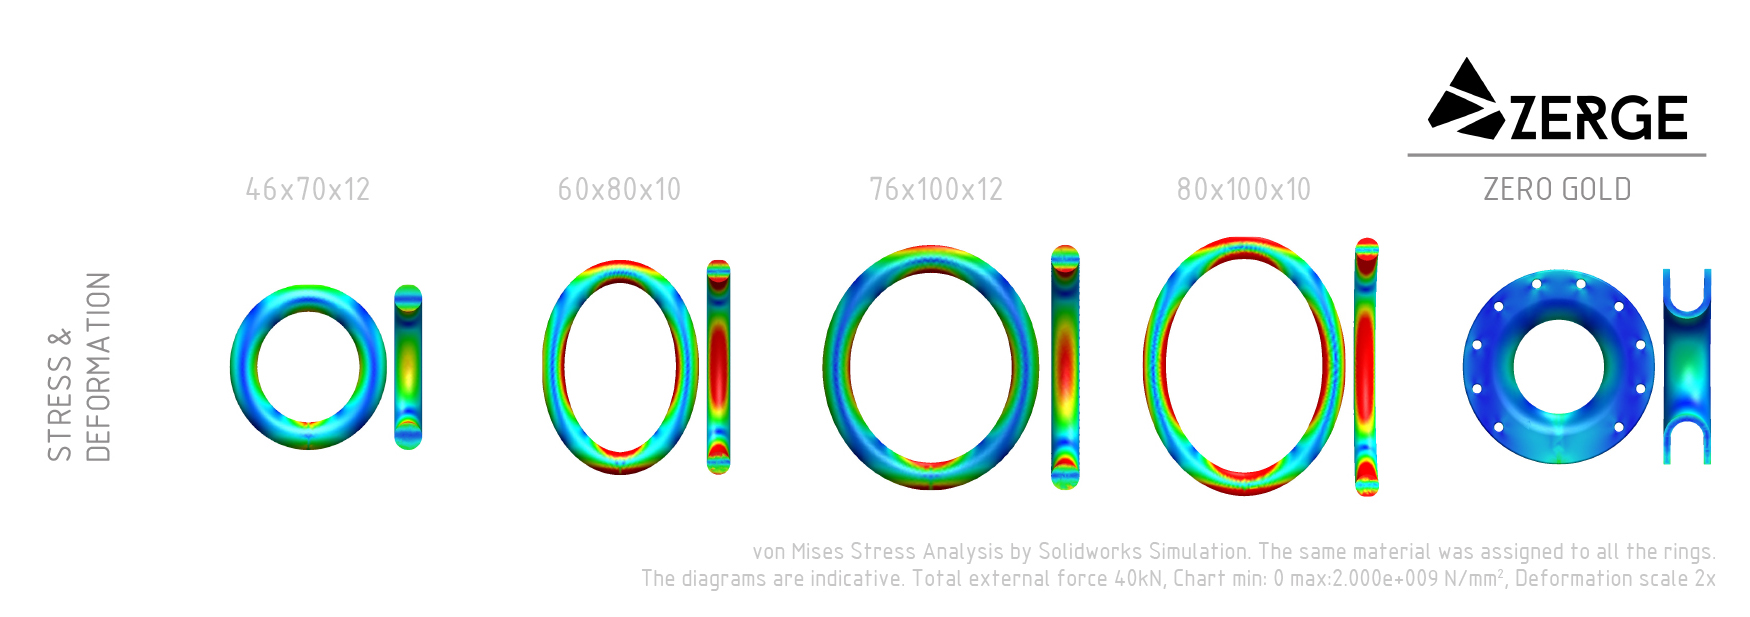 rings_comp_01 crop info_stress and deformation 2_1750